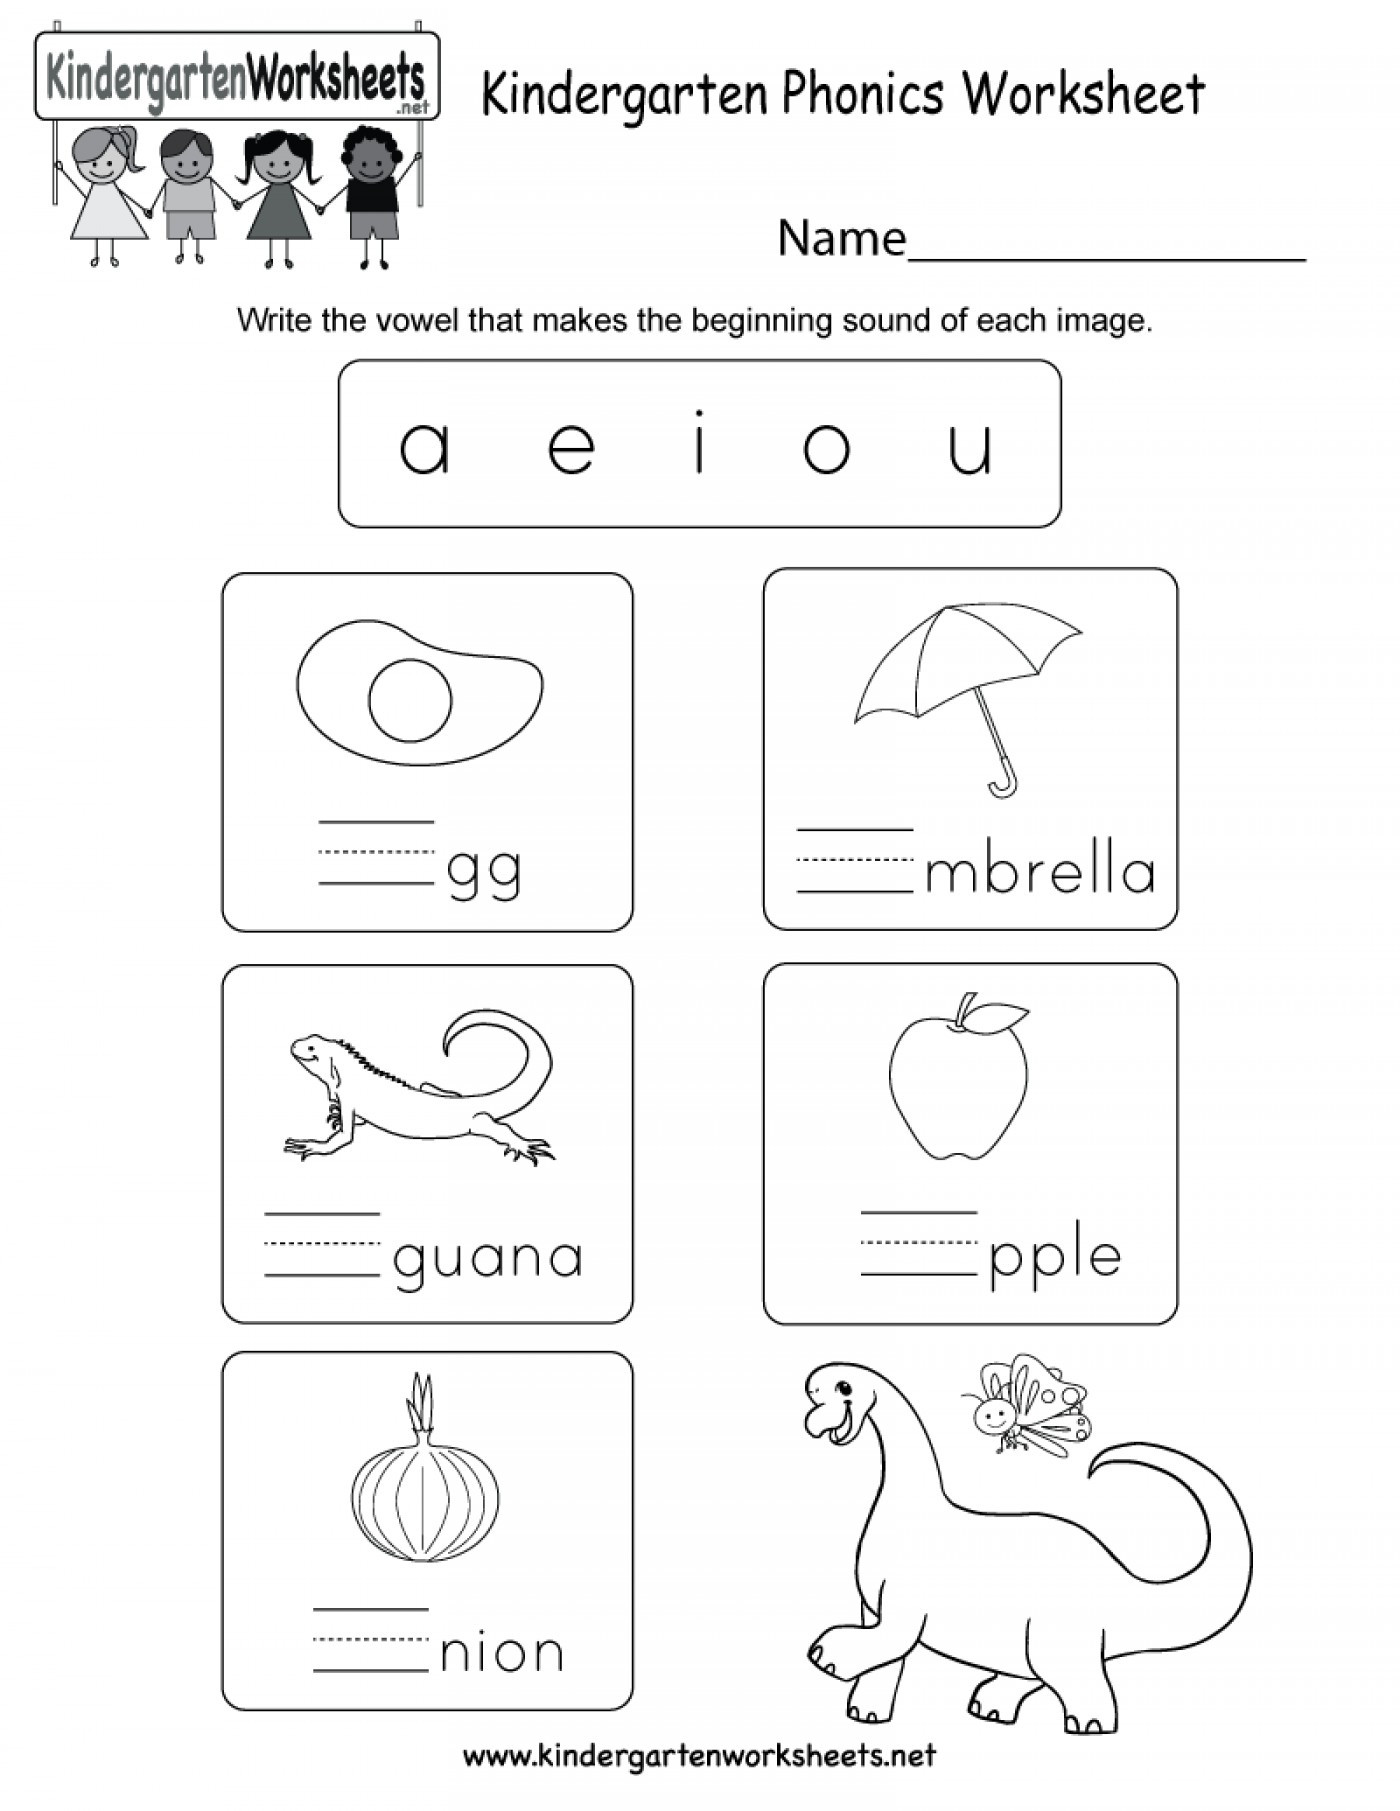 Vowel Worksheets for Kindergarten Vowel Worksheet for Preschool Clover Hatunisi